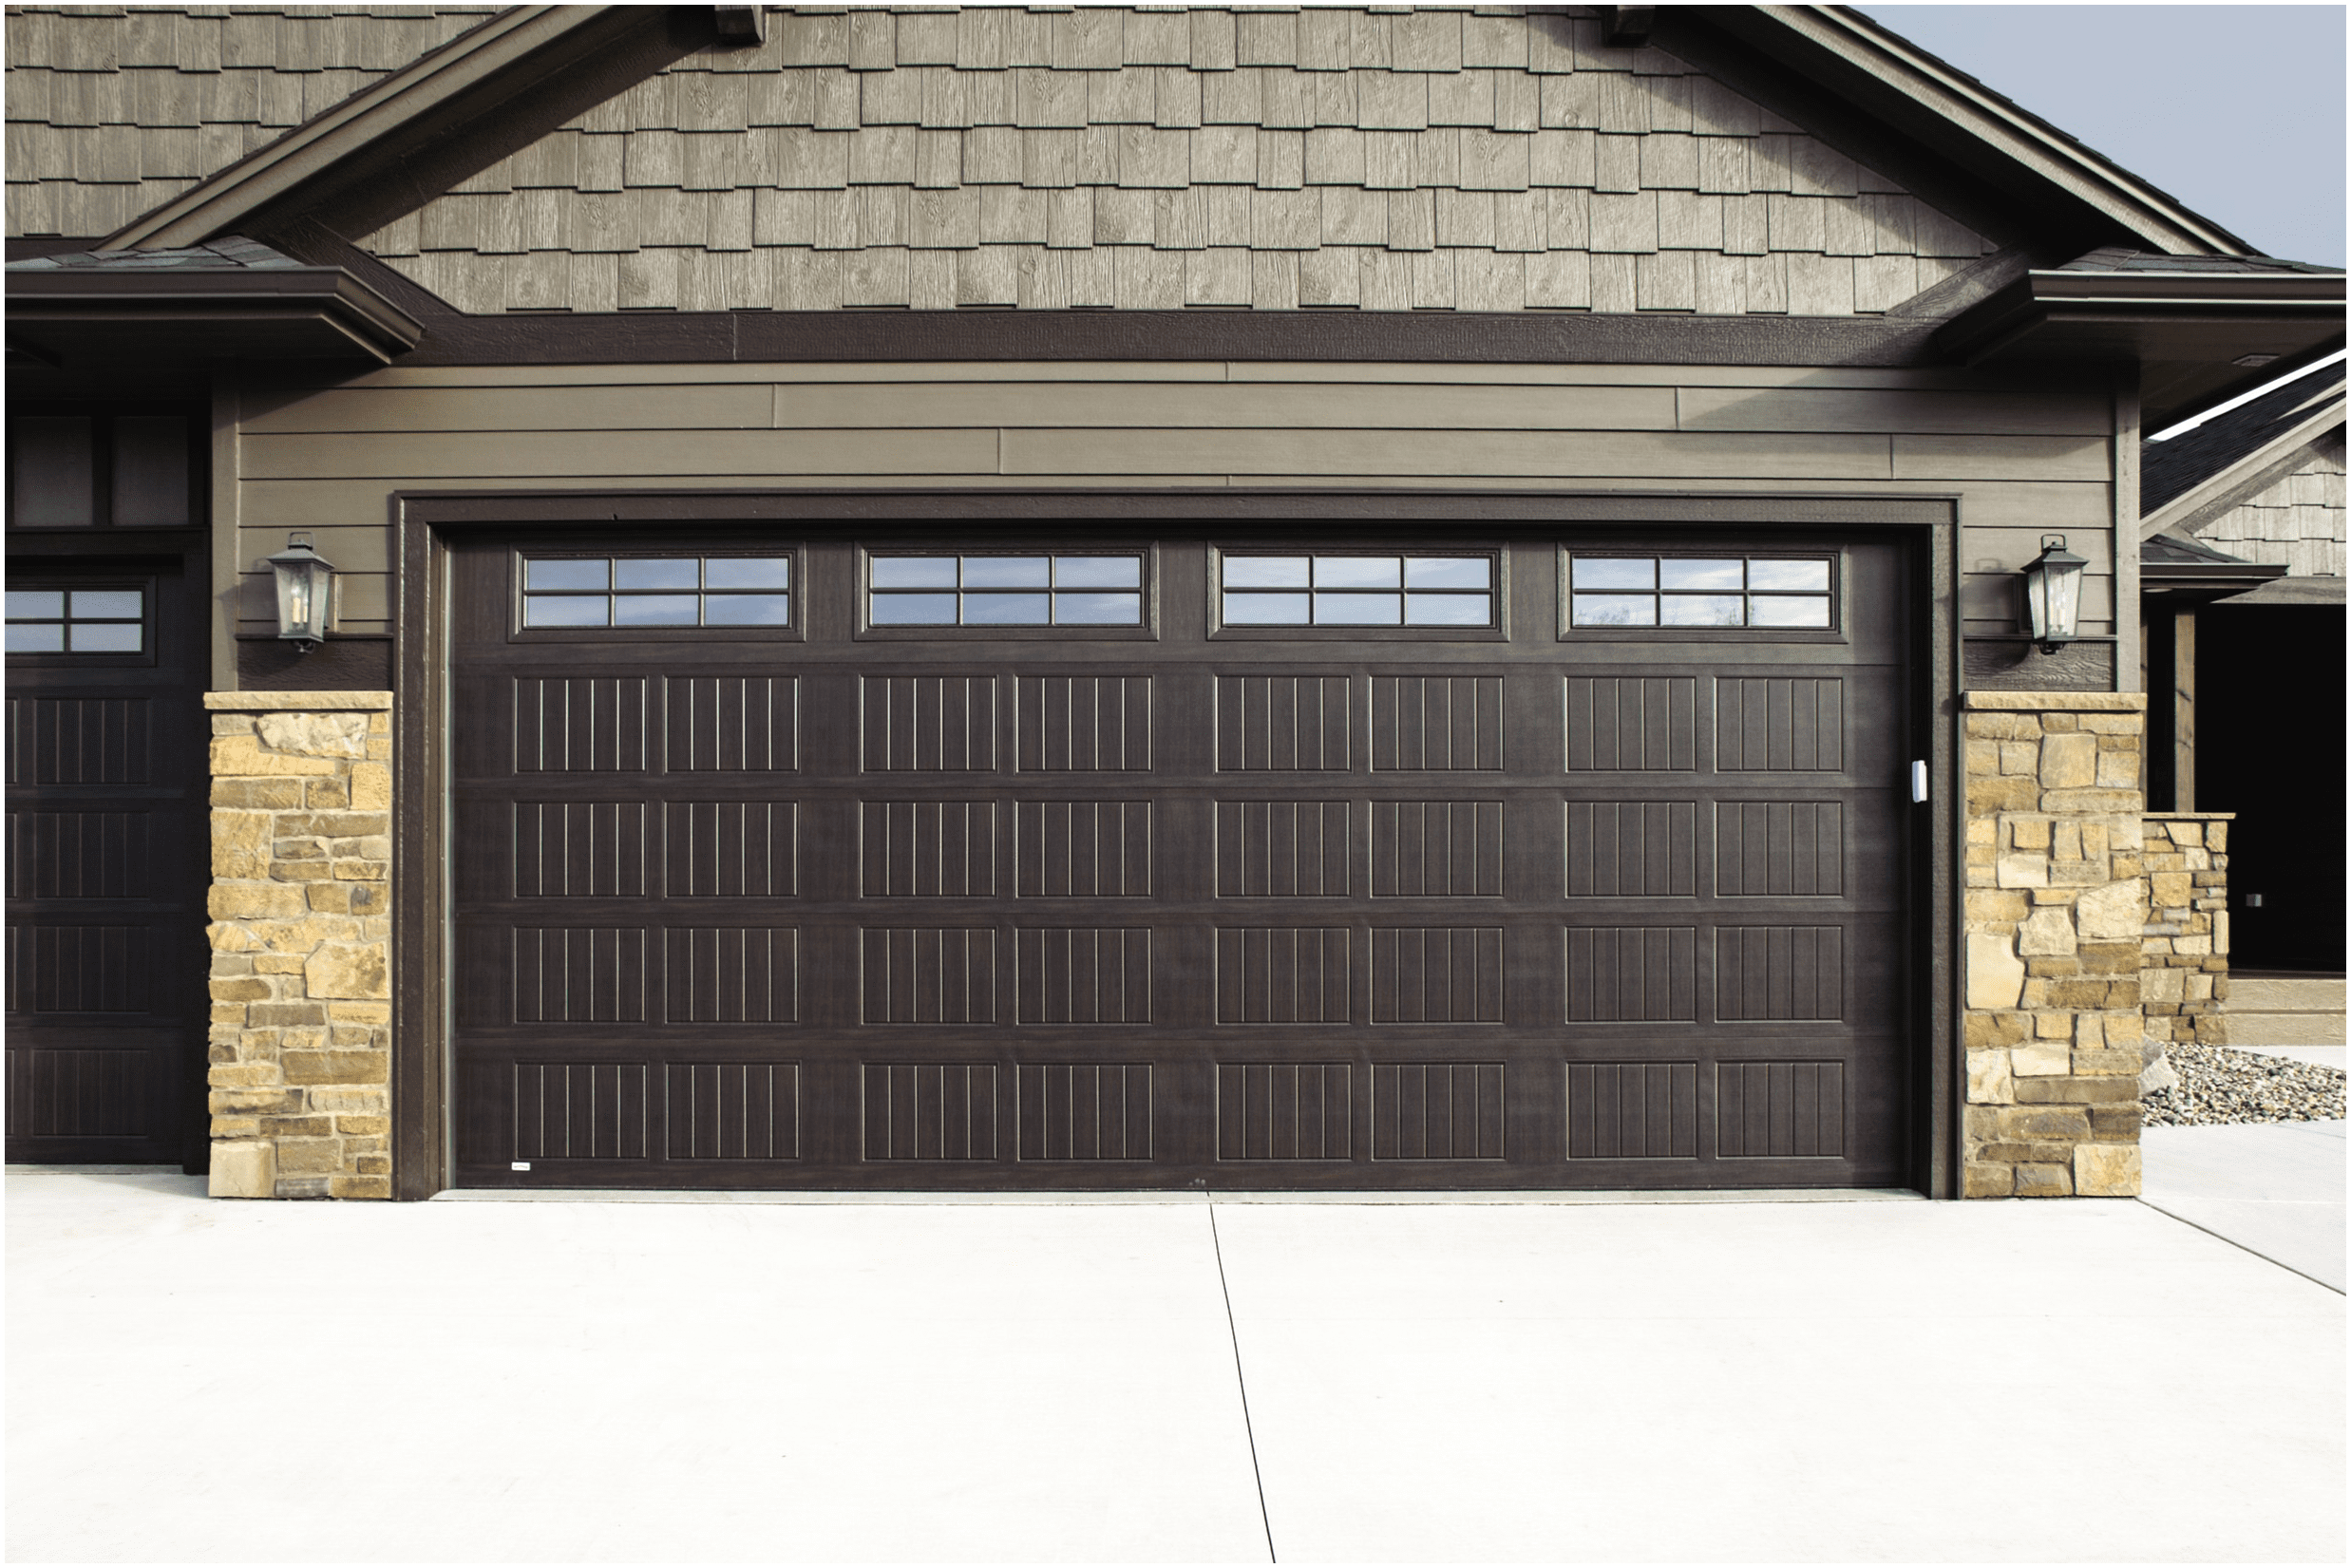 Thermacore Steel Doors Gallery  Overhead Door Of So Cal. Craftsman Garage Door Opener Pad. Garage Door Opener Warranty. Garage Doors Indianapolis. 2 Door Cabinet. Sliding Barn Door Bathroom Privacy. Overhead Door Corpus Christi. Keyless Entry Door Locks. Crab Door Knocker